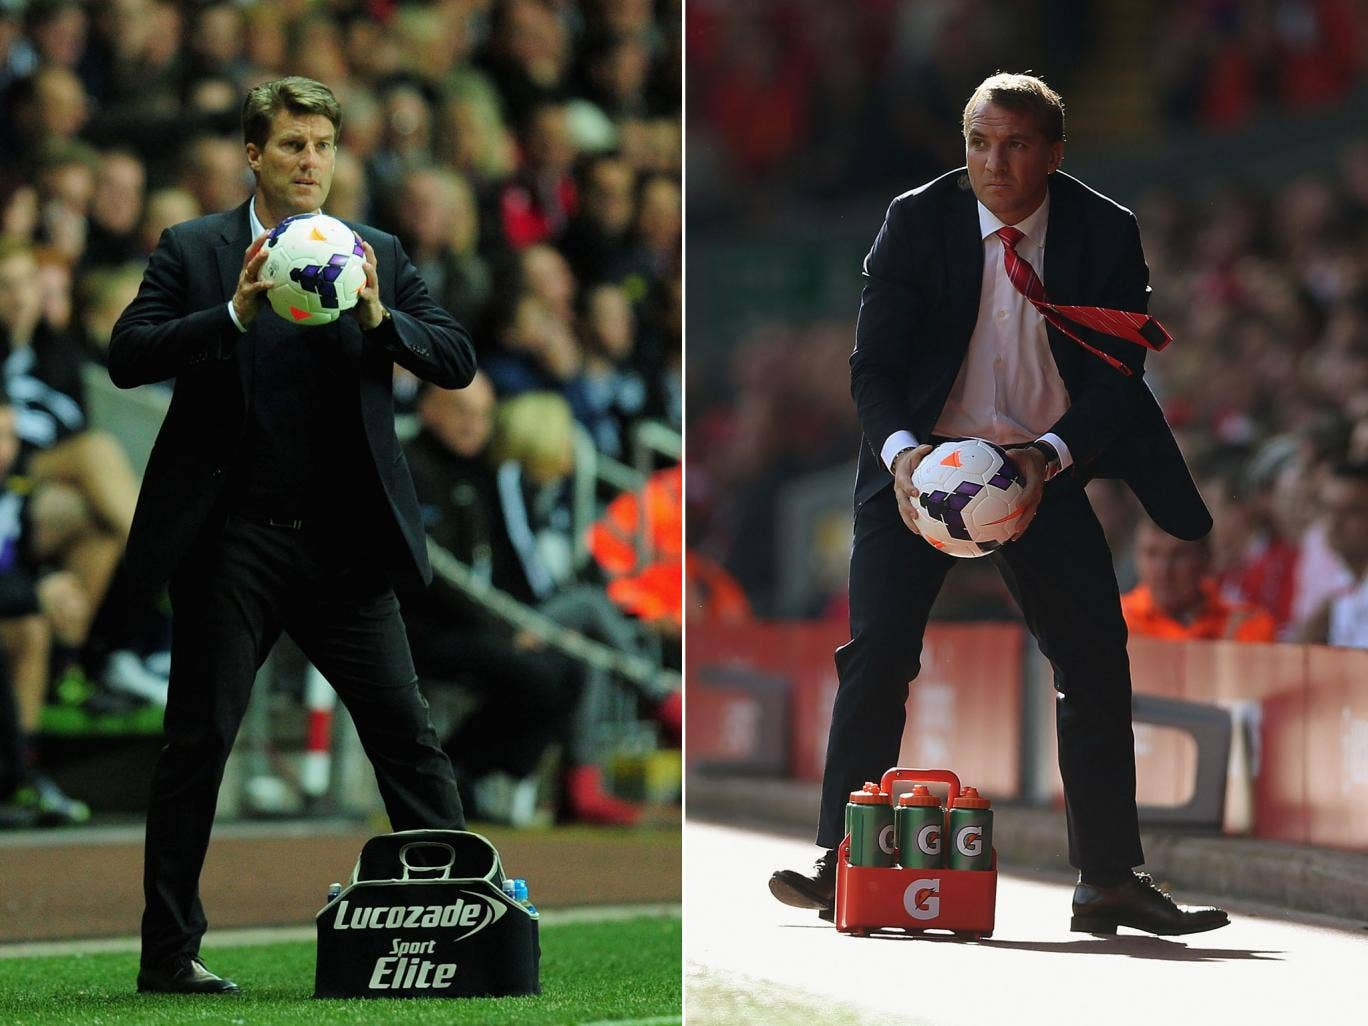 Michael Laudrup (left) and Brendan Rodgers have had very different playing careers